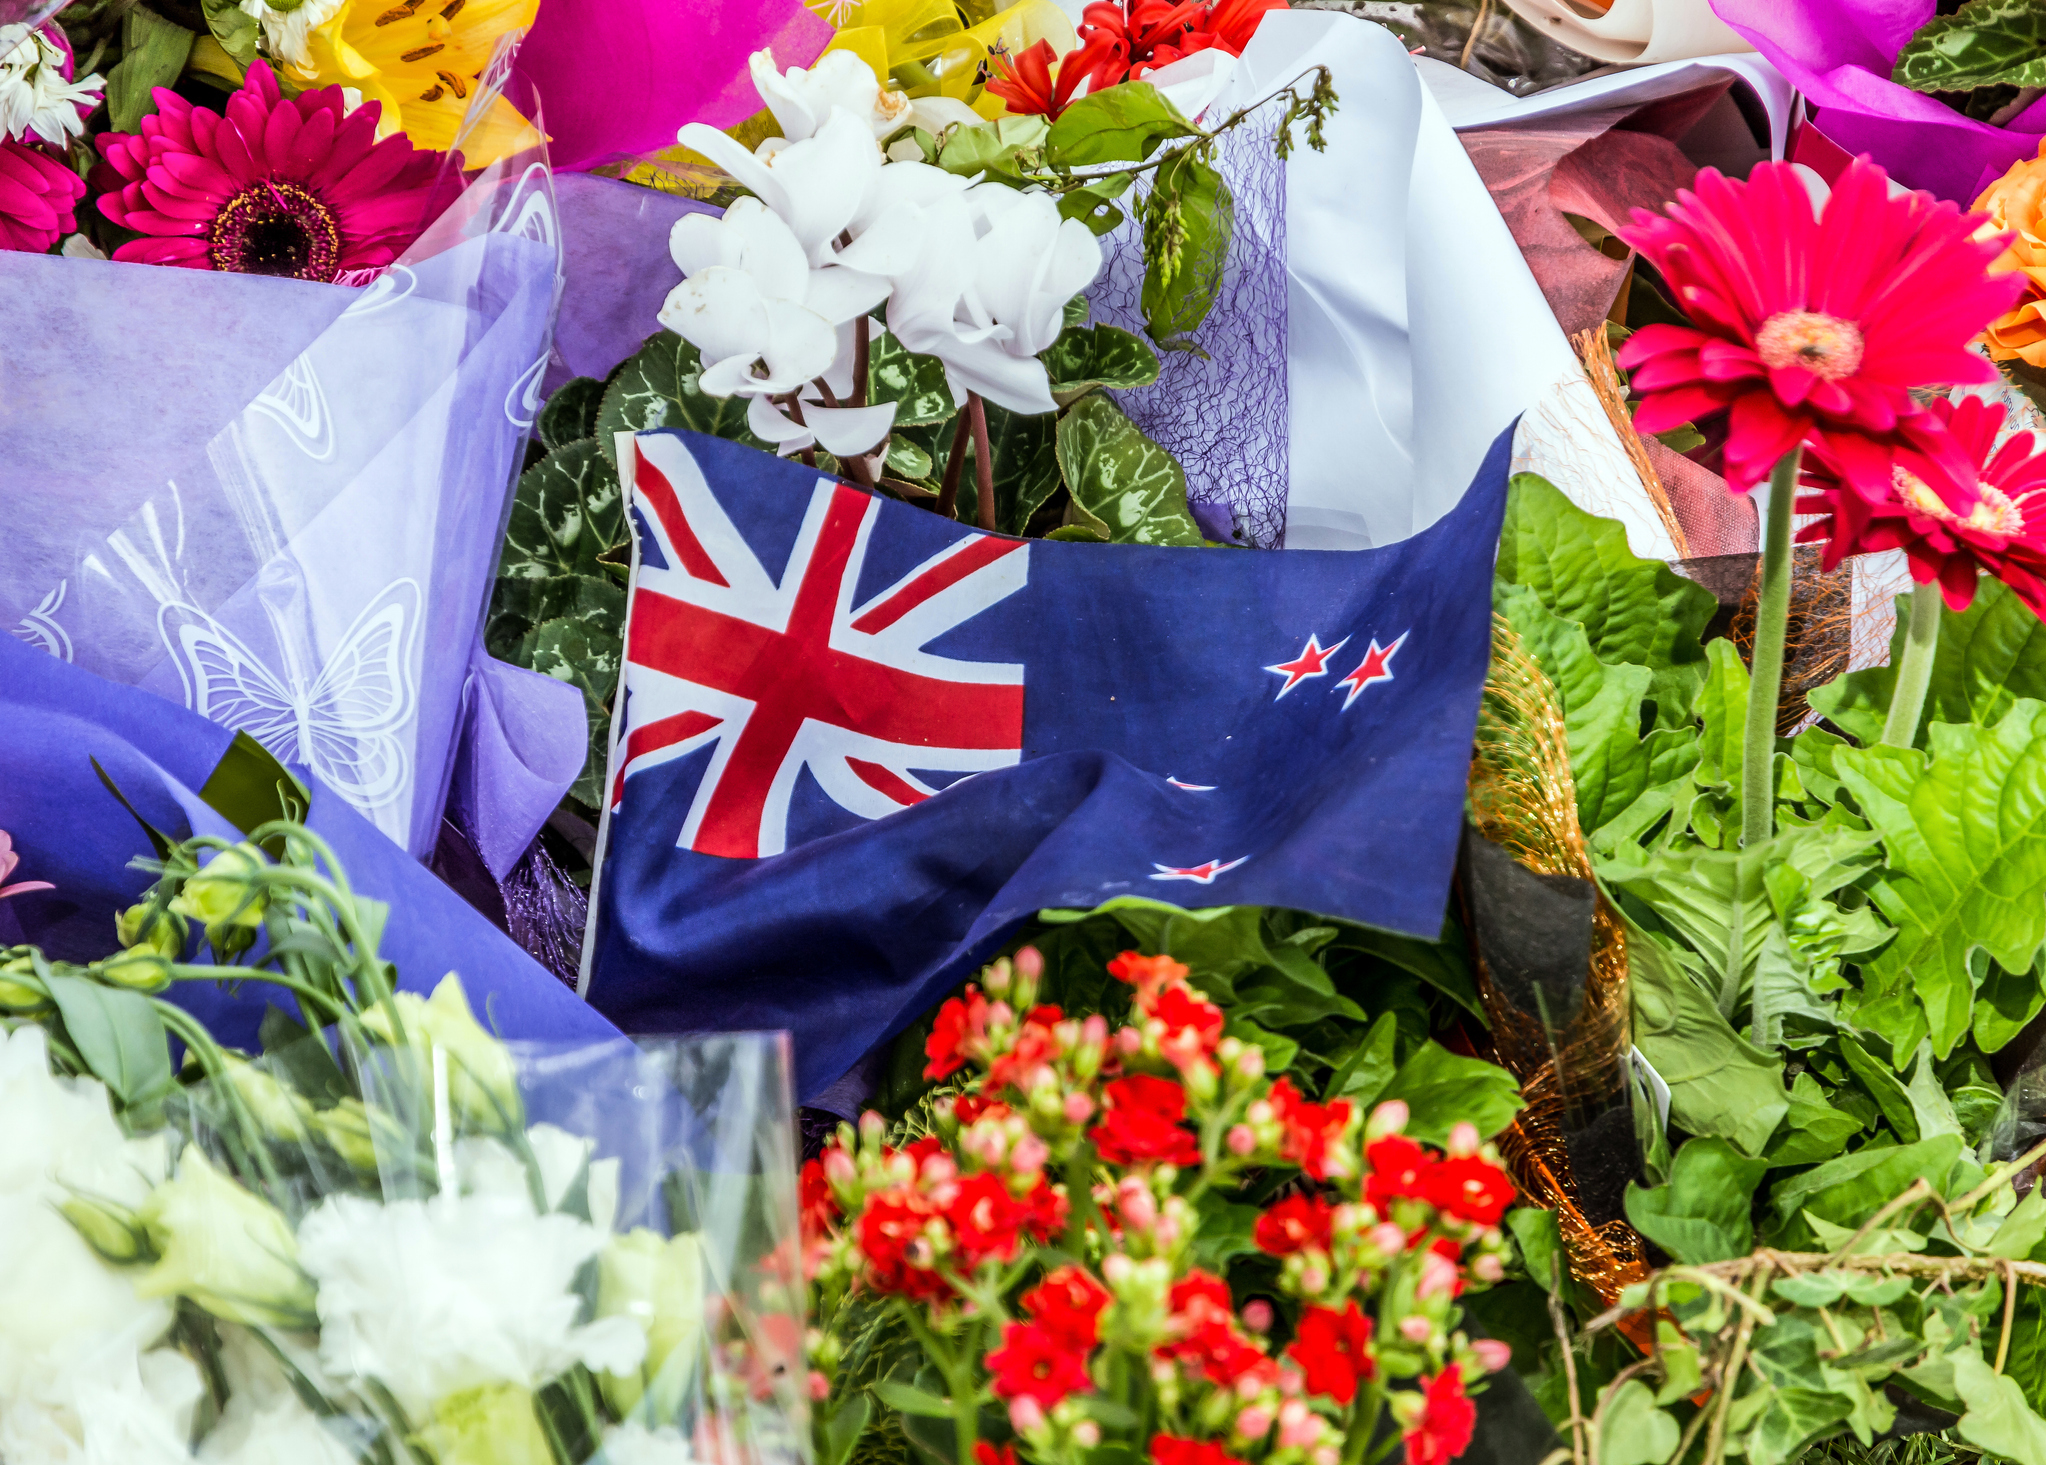 The mosque at the heart of the Christchurch terrorist attack has received a donation of $10 million towards rebuilding